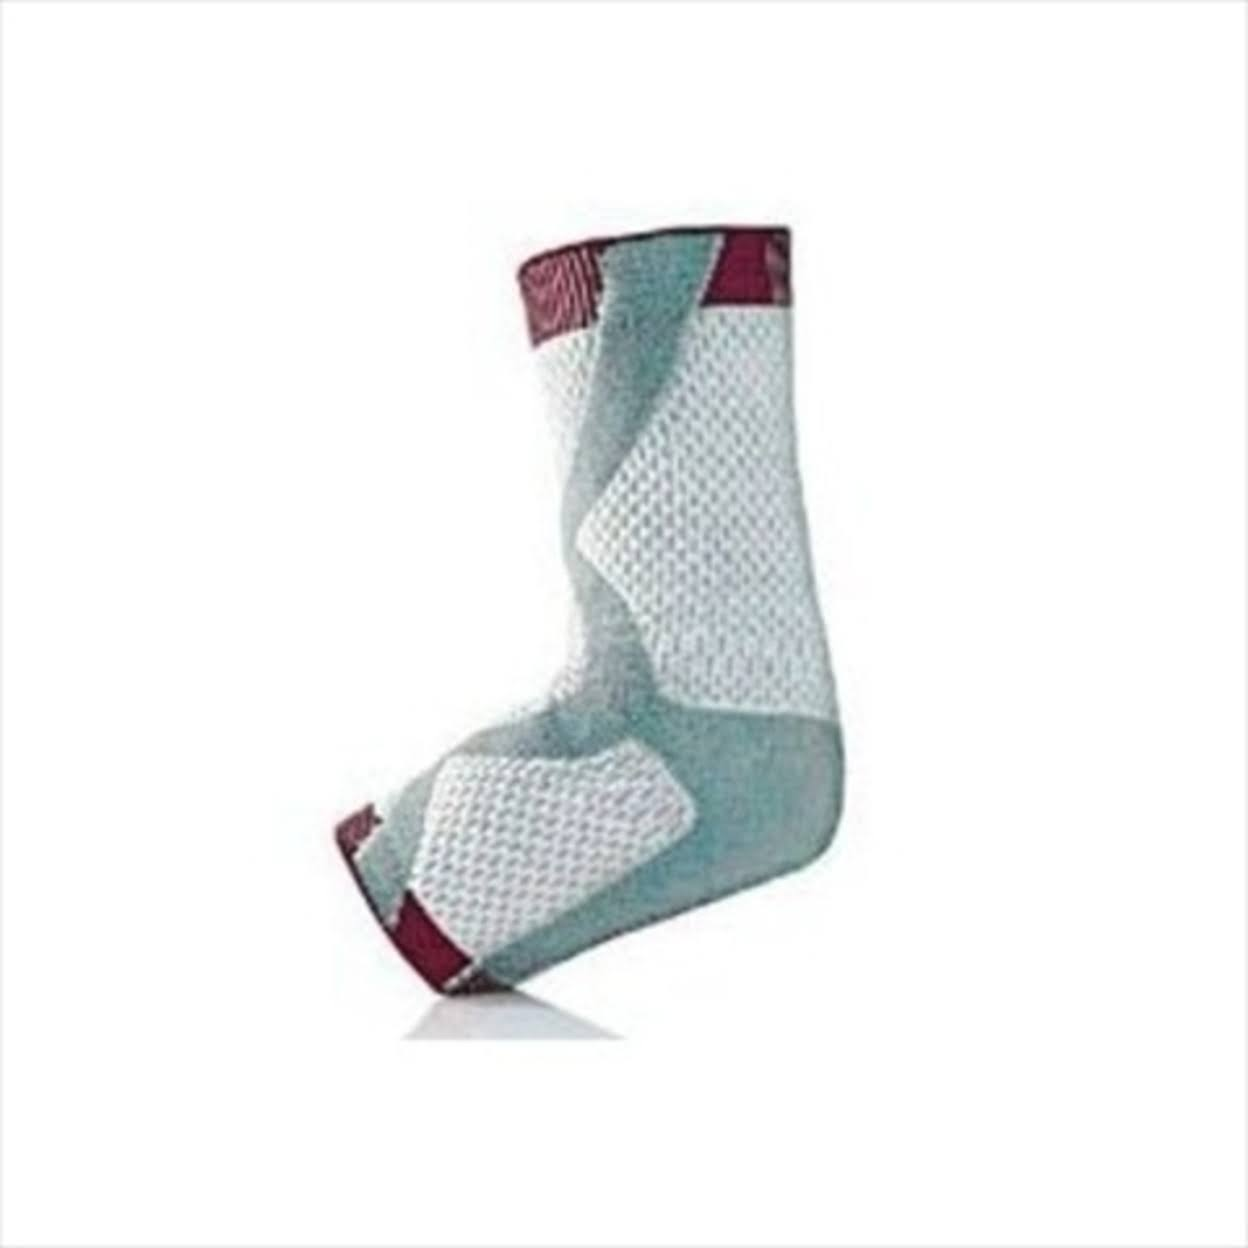 Fla Prolite 3D Ankle Support - Medium, White/Gray, Right